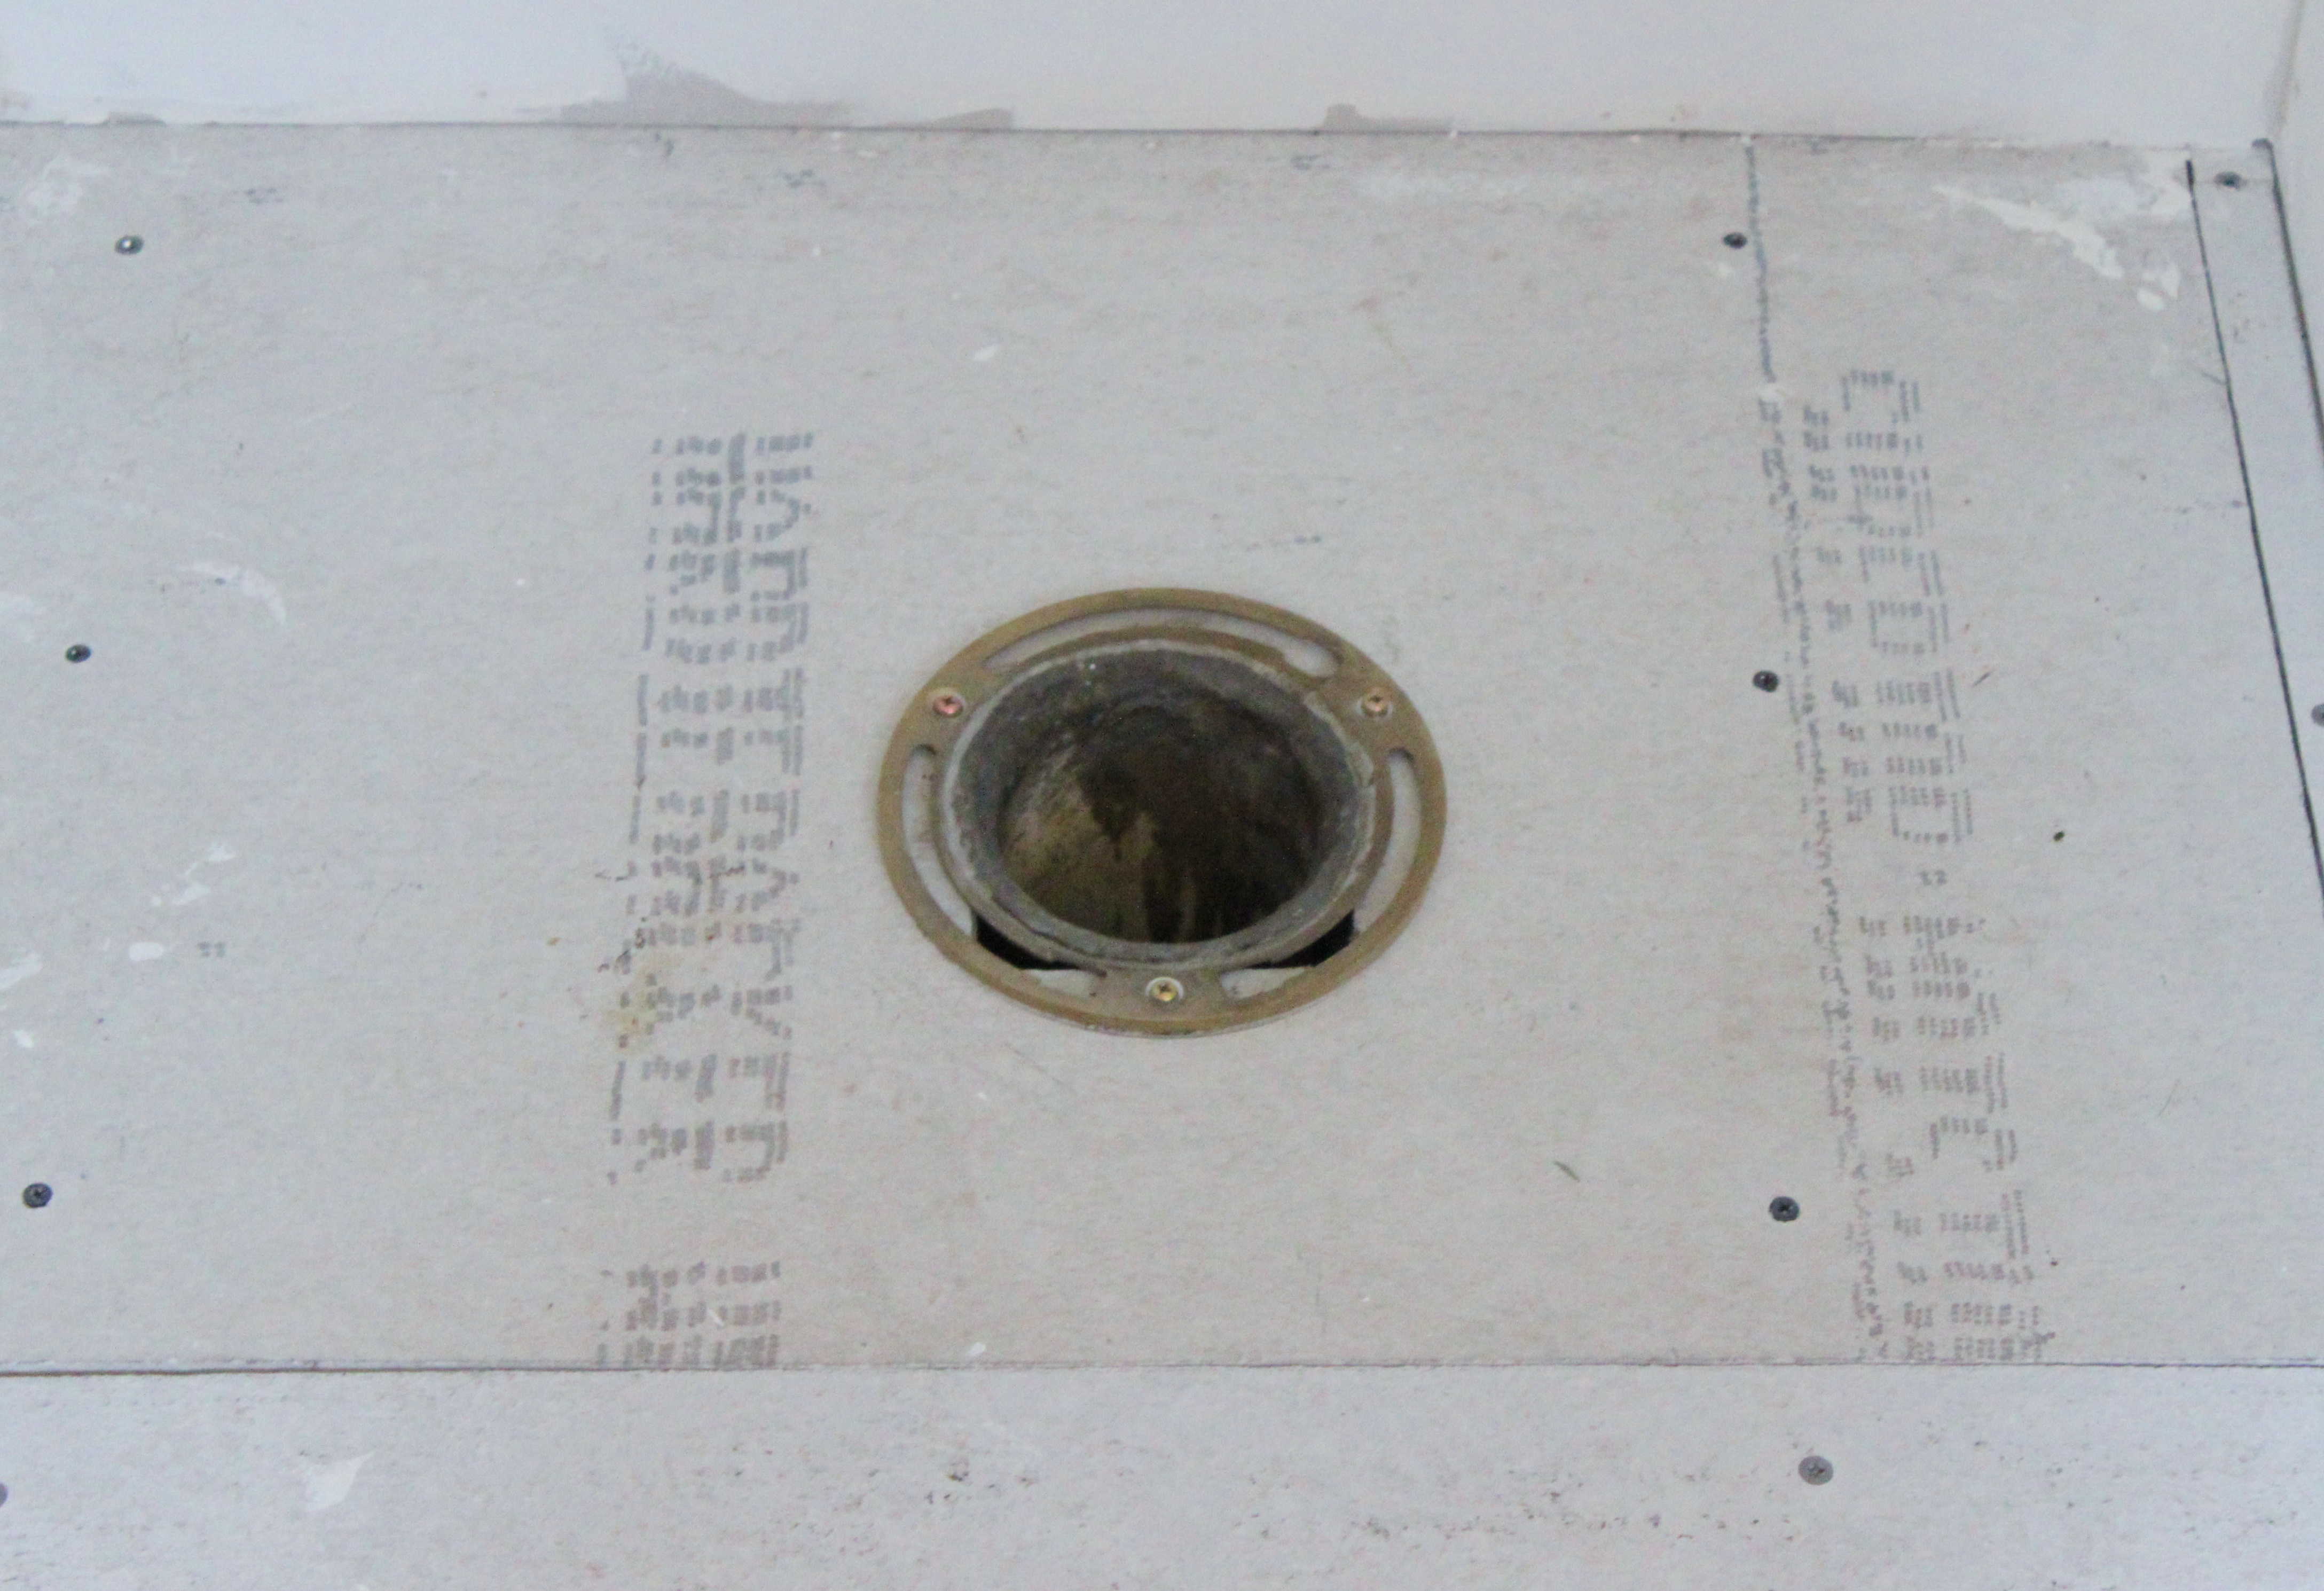 Drain flies bathroom - There S Been A Rag Stuffed Down That Hole Since We Started The Remodel When I Pulled It Out 20 Flies Flew Out With It